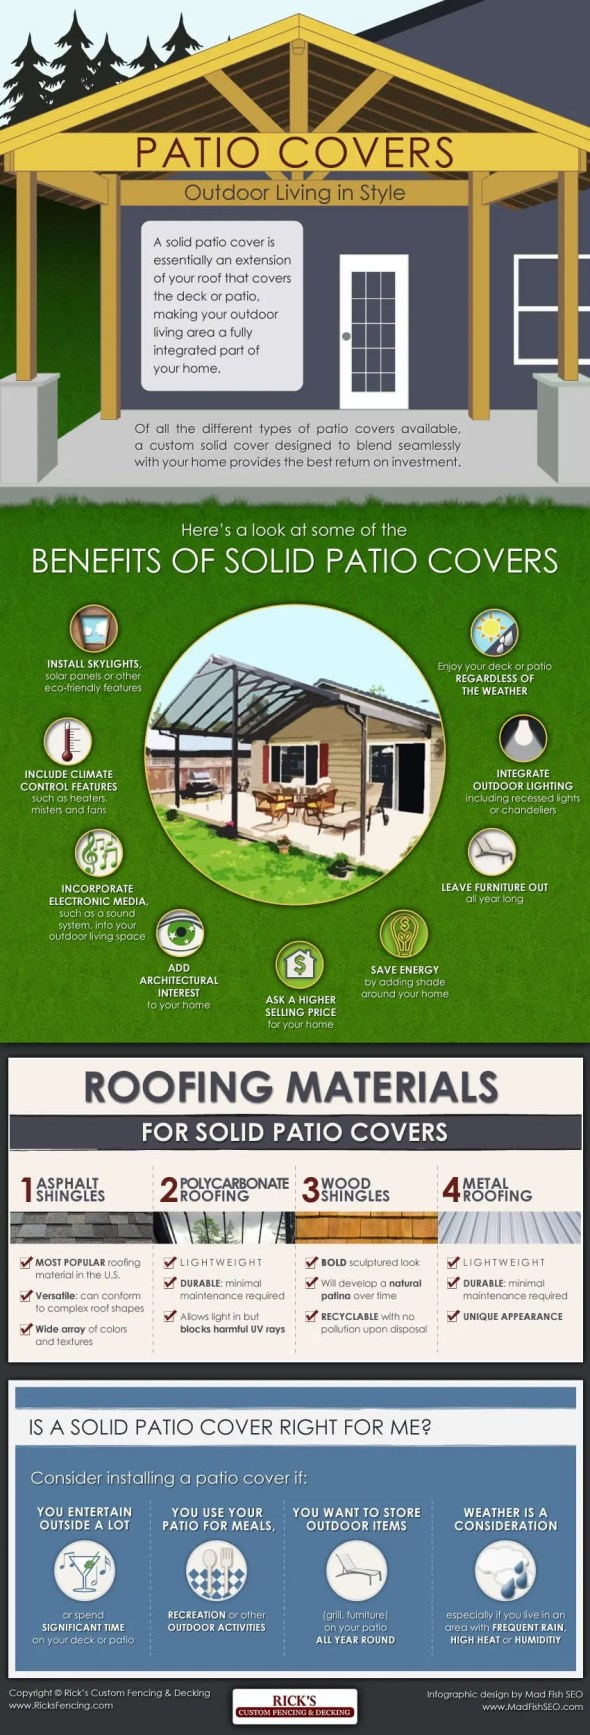 Infographic: Solid Patio Covers - Outdoor Living in Style